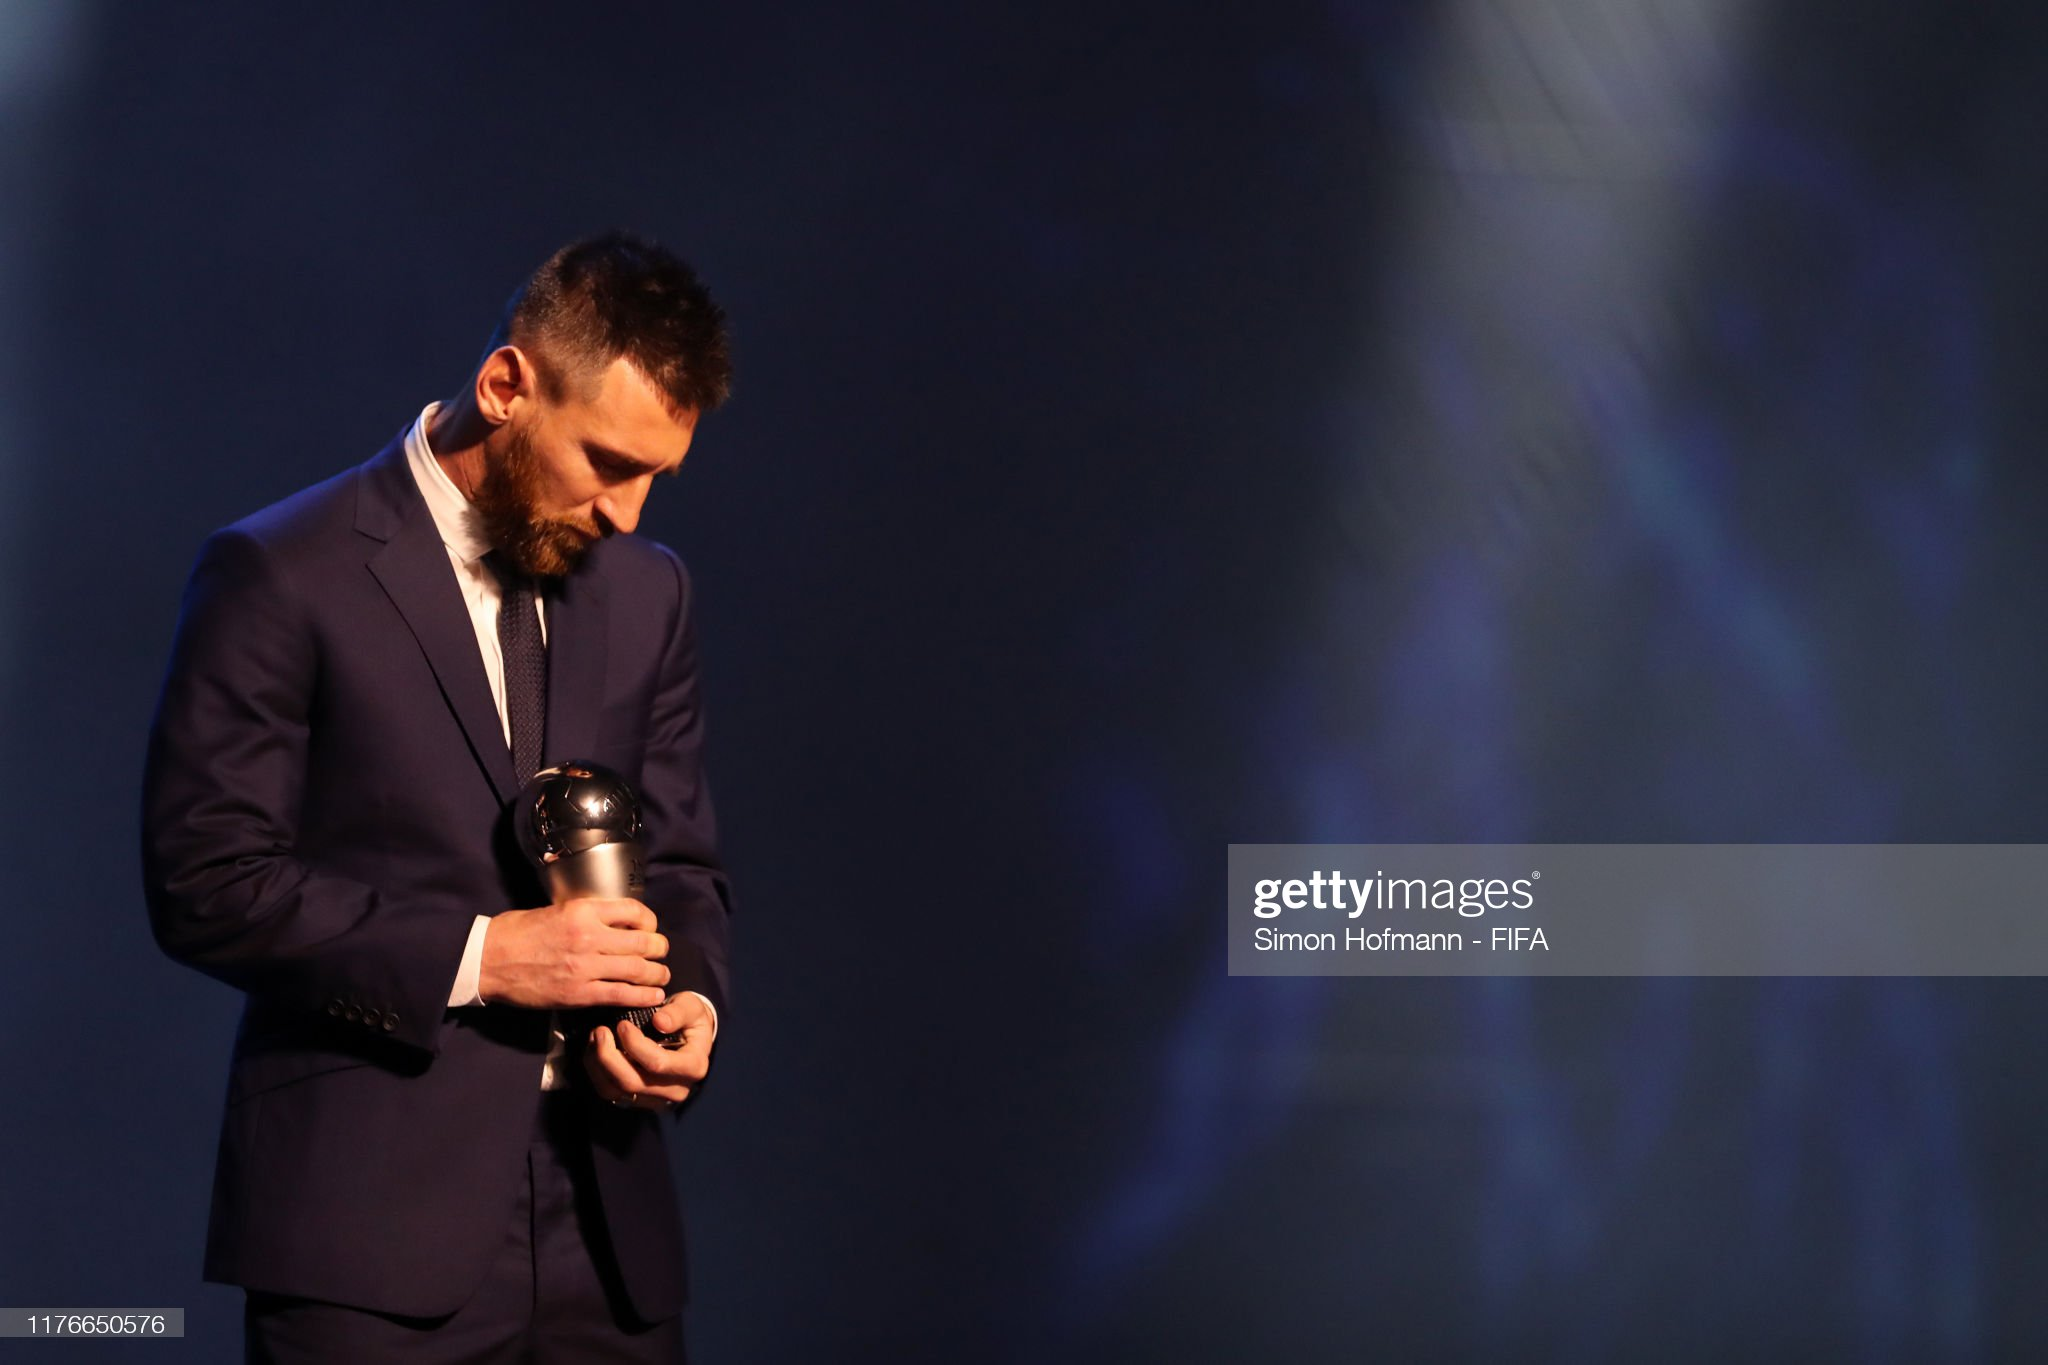 The Best FIFA Football Awards 2019 The-fifa-fifpro-mens-world11-award-winnner-lionel-messi-of-fc-and-picture-id1176650576?s=2048x2048